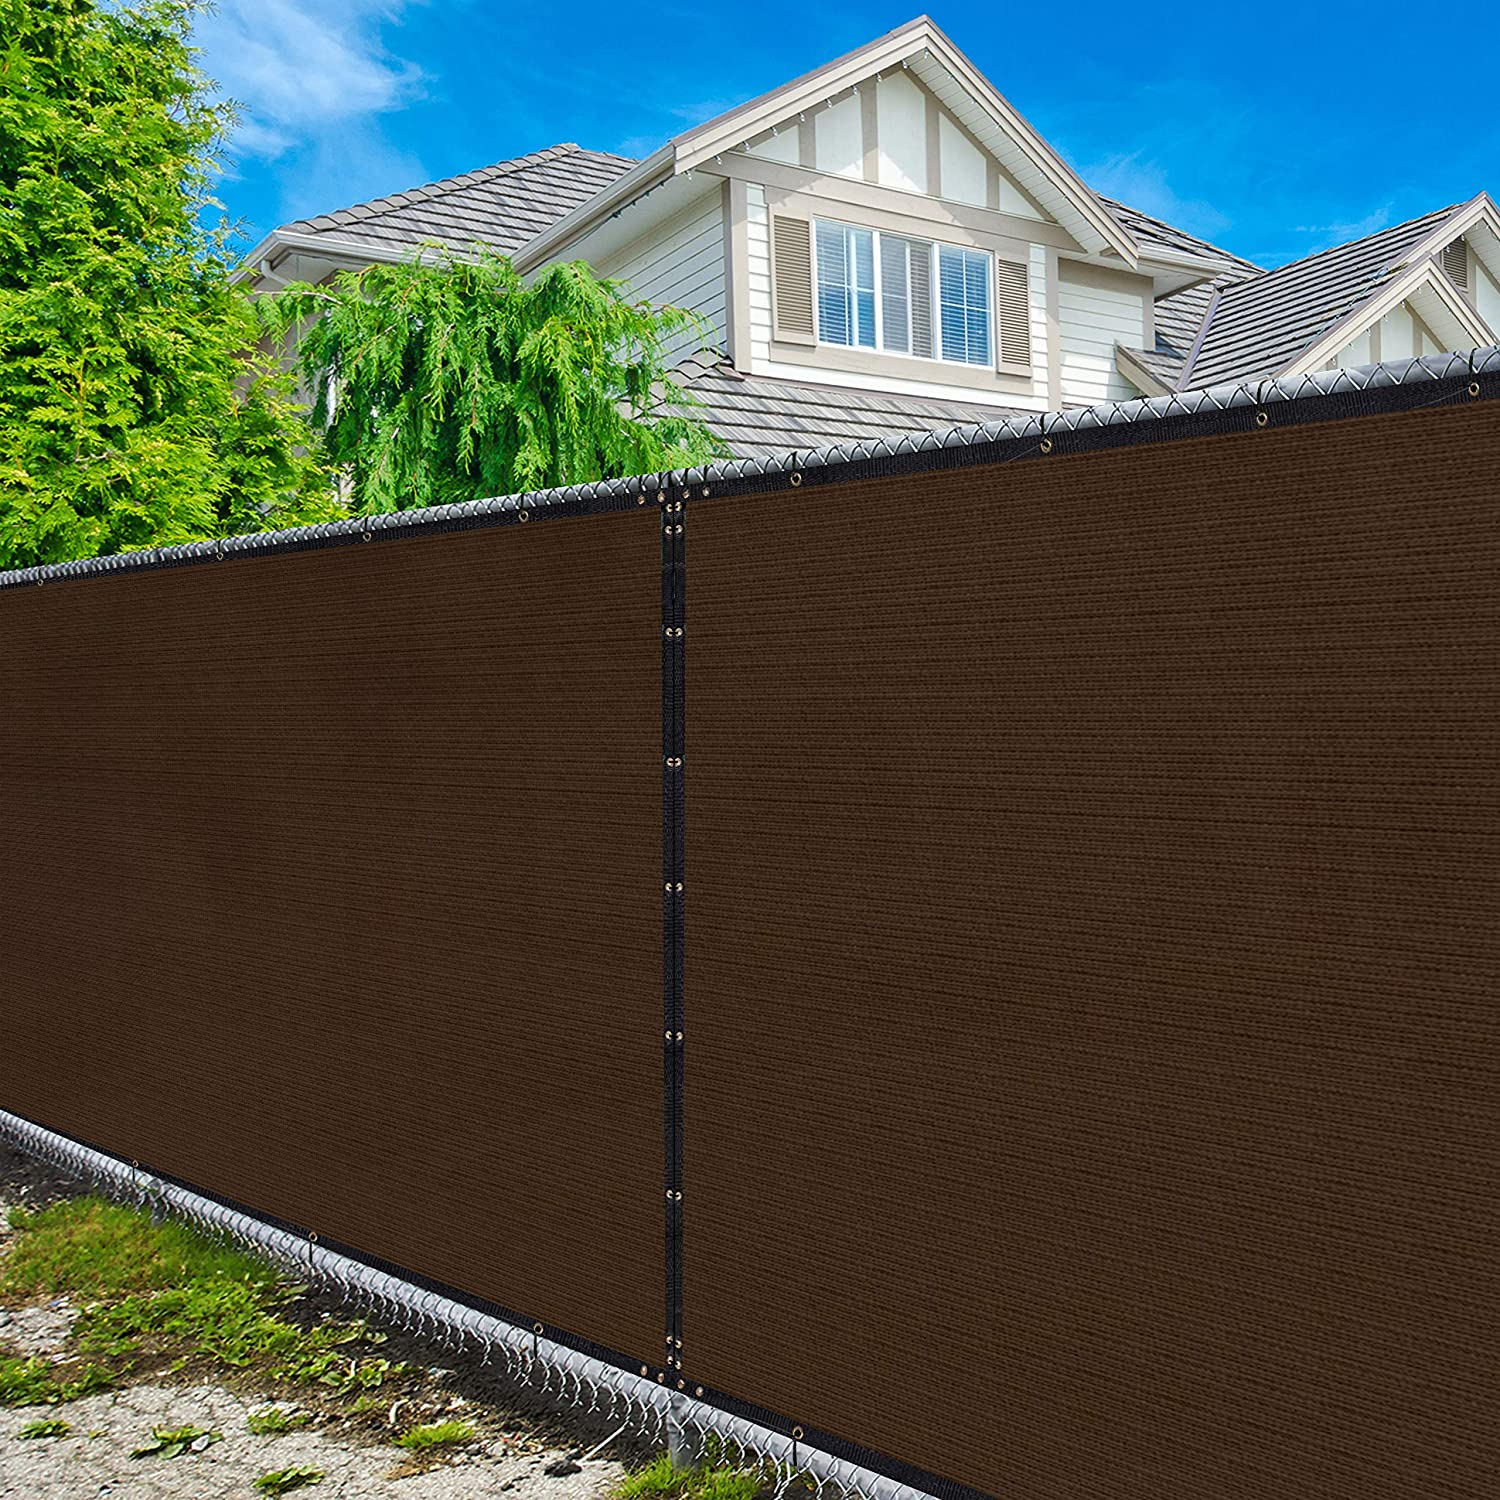 Amgo 4' x 50' Brown Fence Privacy Screen Windscreen,with Bindings & Grommets, Heavy Duty for Commercial and Residential, 90% Blockage, Cable Zip Ties Included, (Available for Custom Sizes)